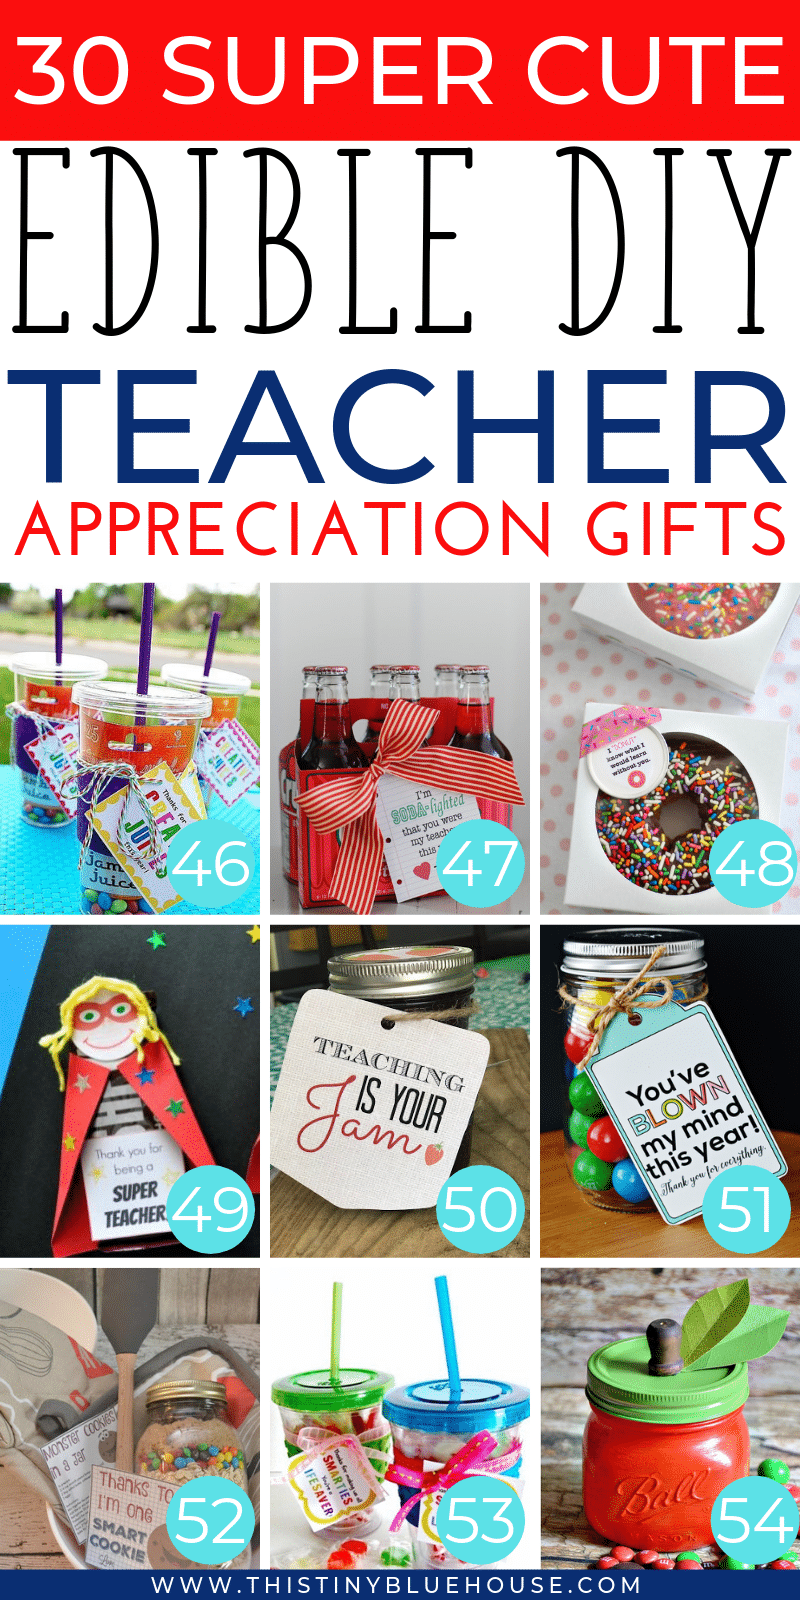 Are you looking for the perfect cute teacher appreciation gift to express your gratitude? Here are the absolute best cute and edible teacher appreciation gifts. #teachergifts #teacherappreciationgifts #teachergiftsendofyear #teachergiftsdiy #easydiyteachergifts #homemadeteachergifts #uniqueteachergifts